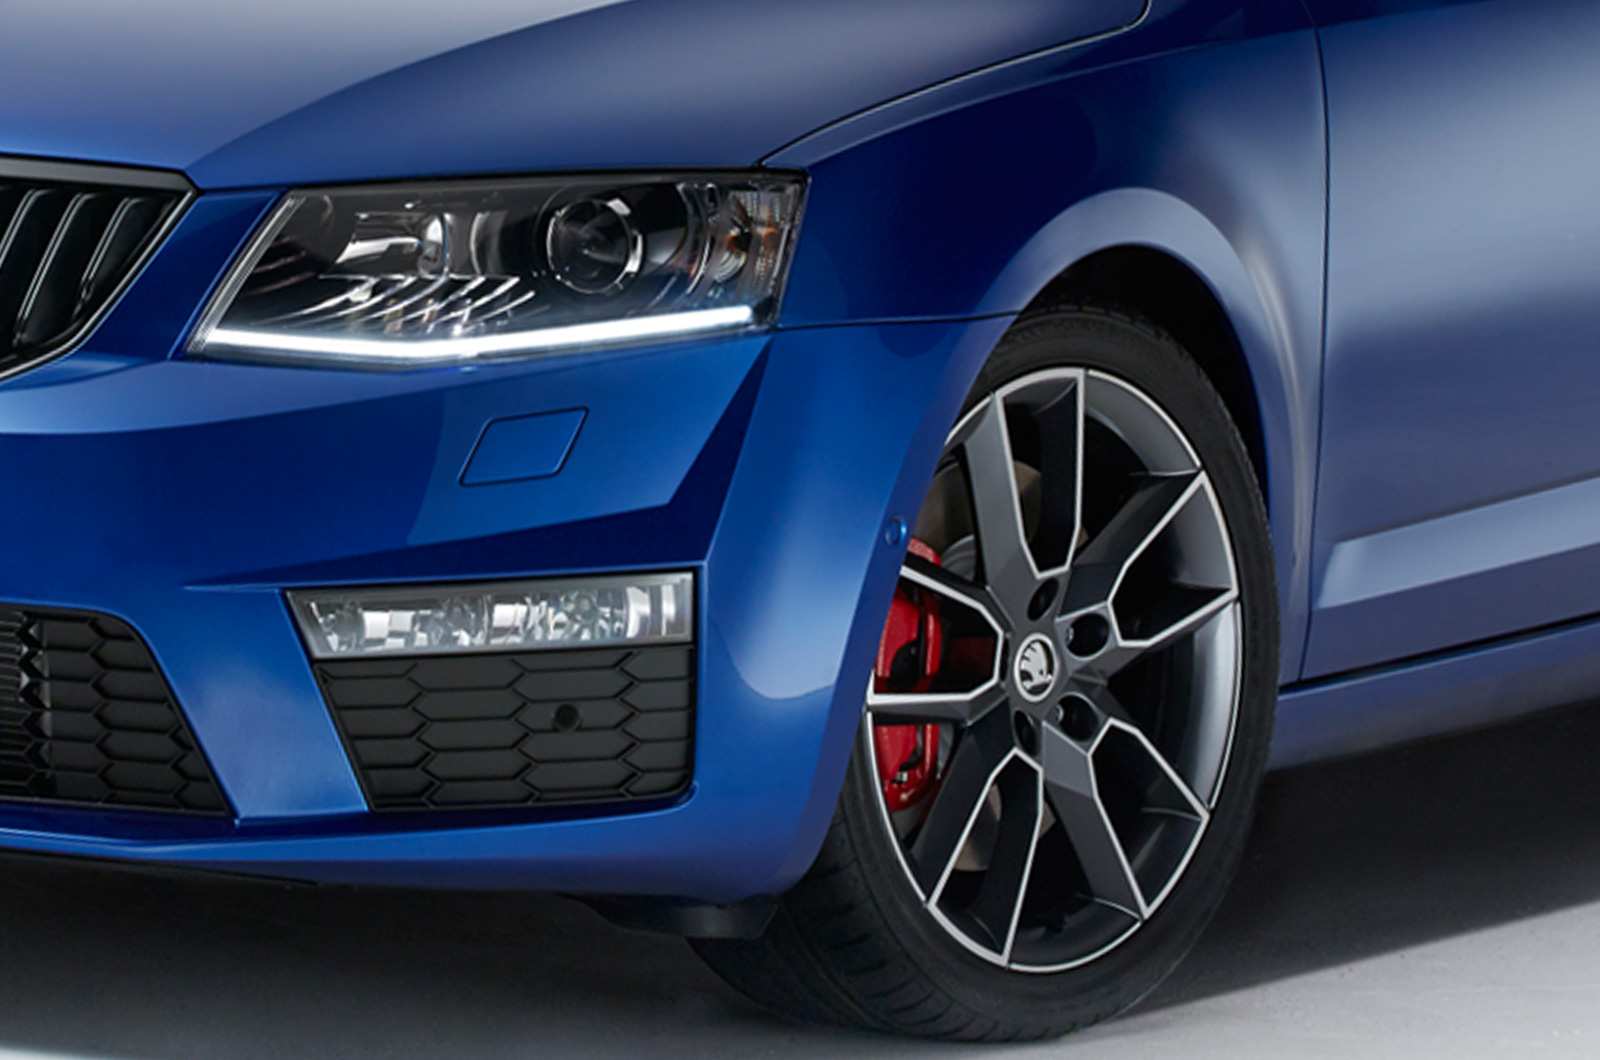 2013 skoda octavia rs unveiled autoevolution. Black Bedroom Furniture Sets. Home Design Ideas